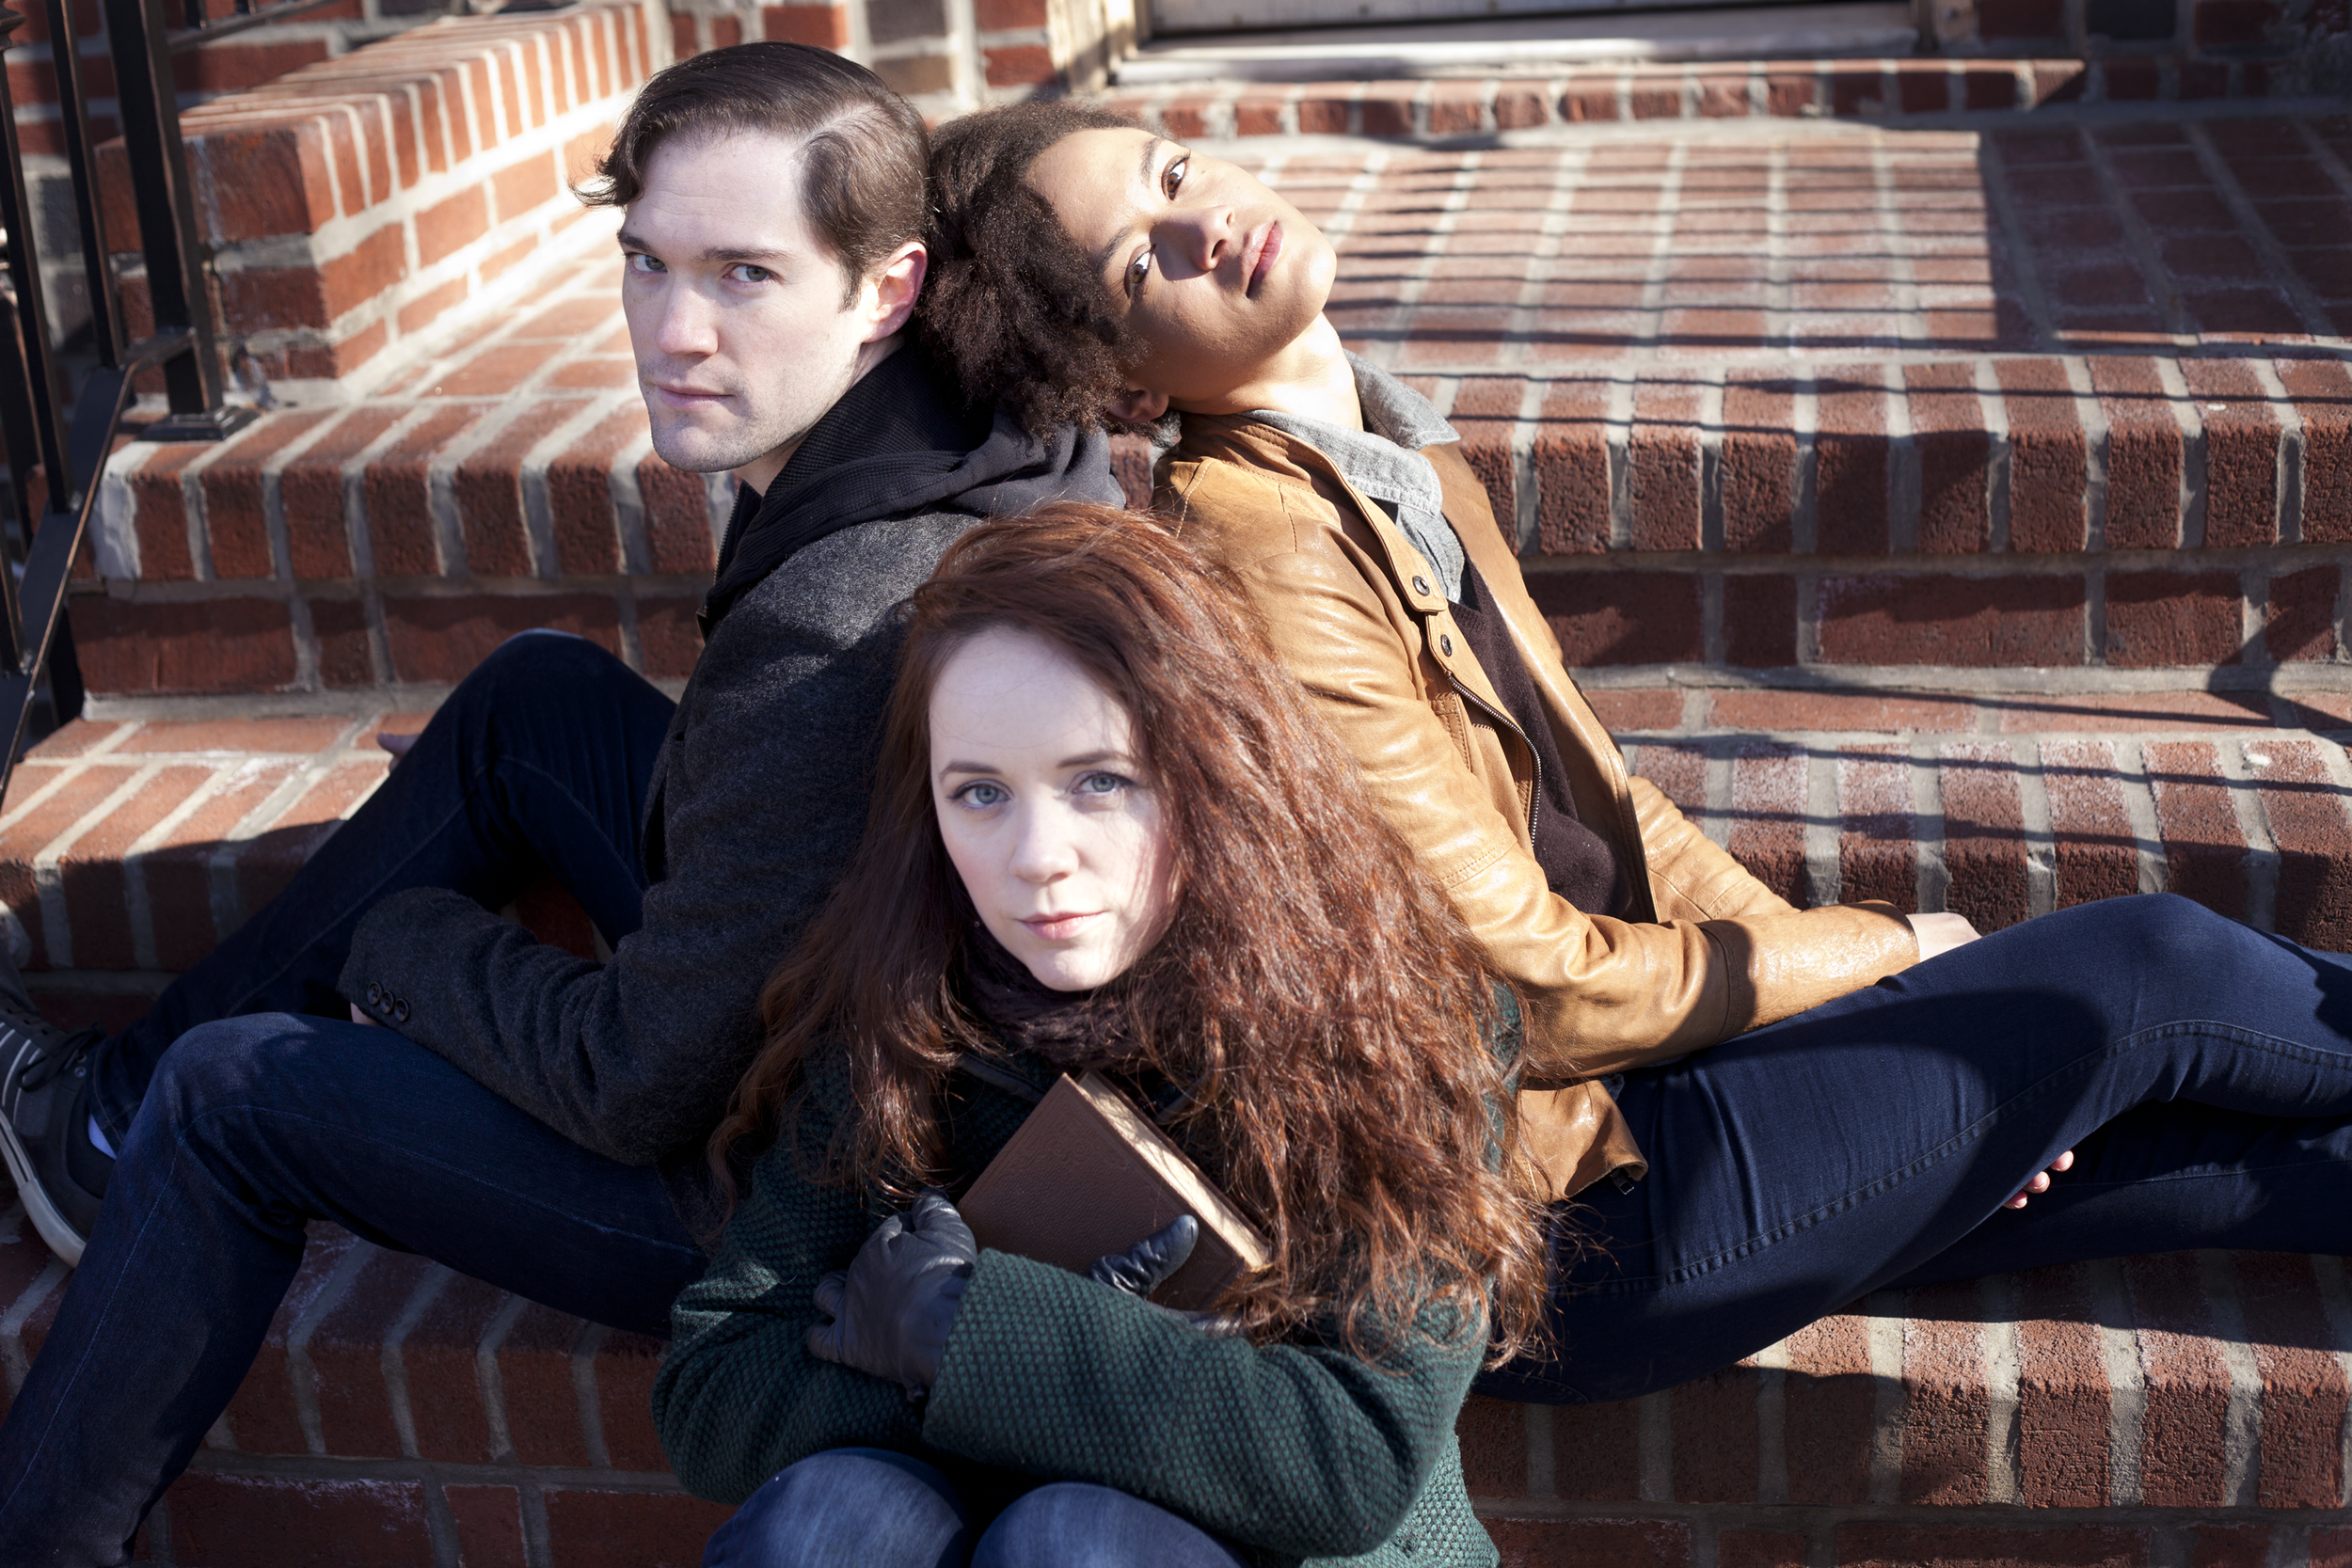 Promotional image for May Violets Spring featuring James Parenti, Monique St. Cyr, and Gwenevere Siscoin Astoria. Photographs by Trish Phelps .